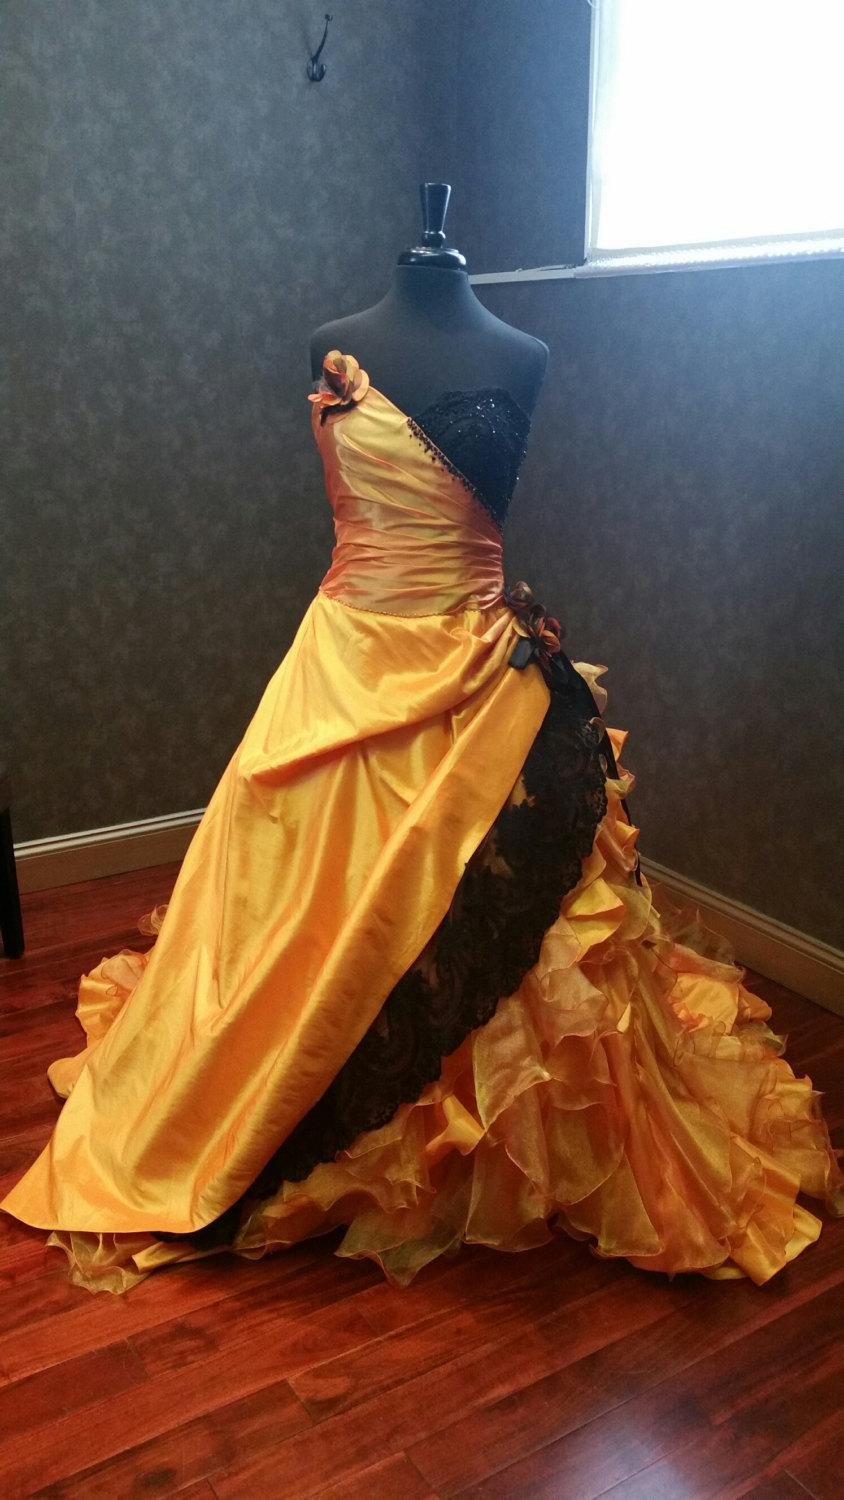 Halloween orange and black wedding dress bridal gown 2533545 halloween orange and black wedding dress bridal gown ombrellifo Image collections